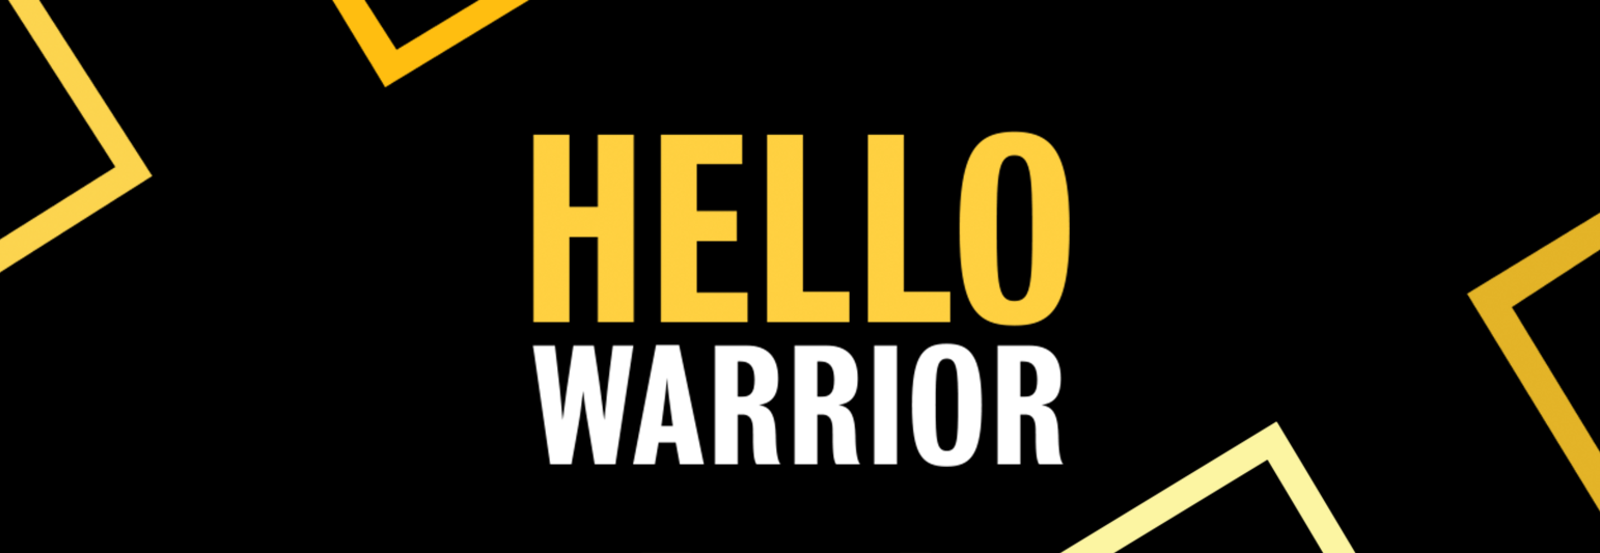 Hello Warrior